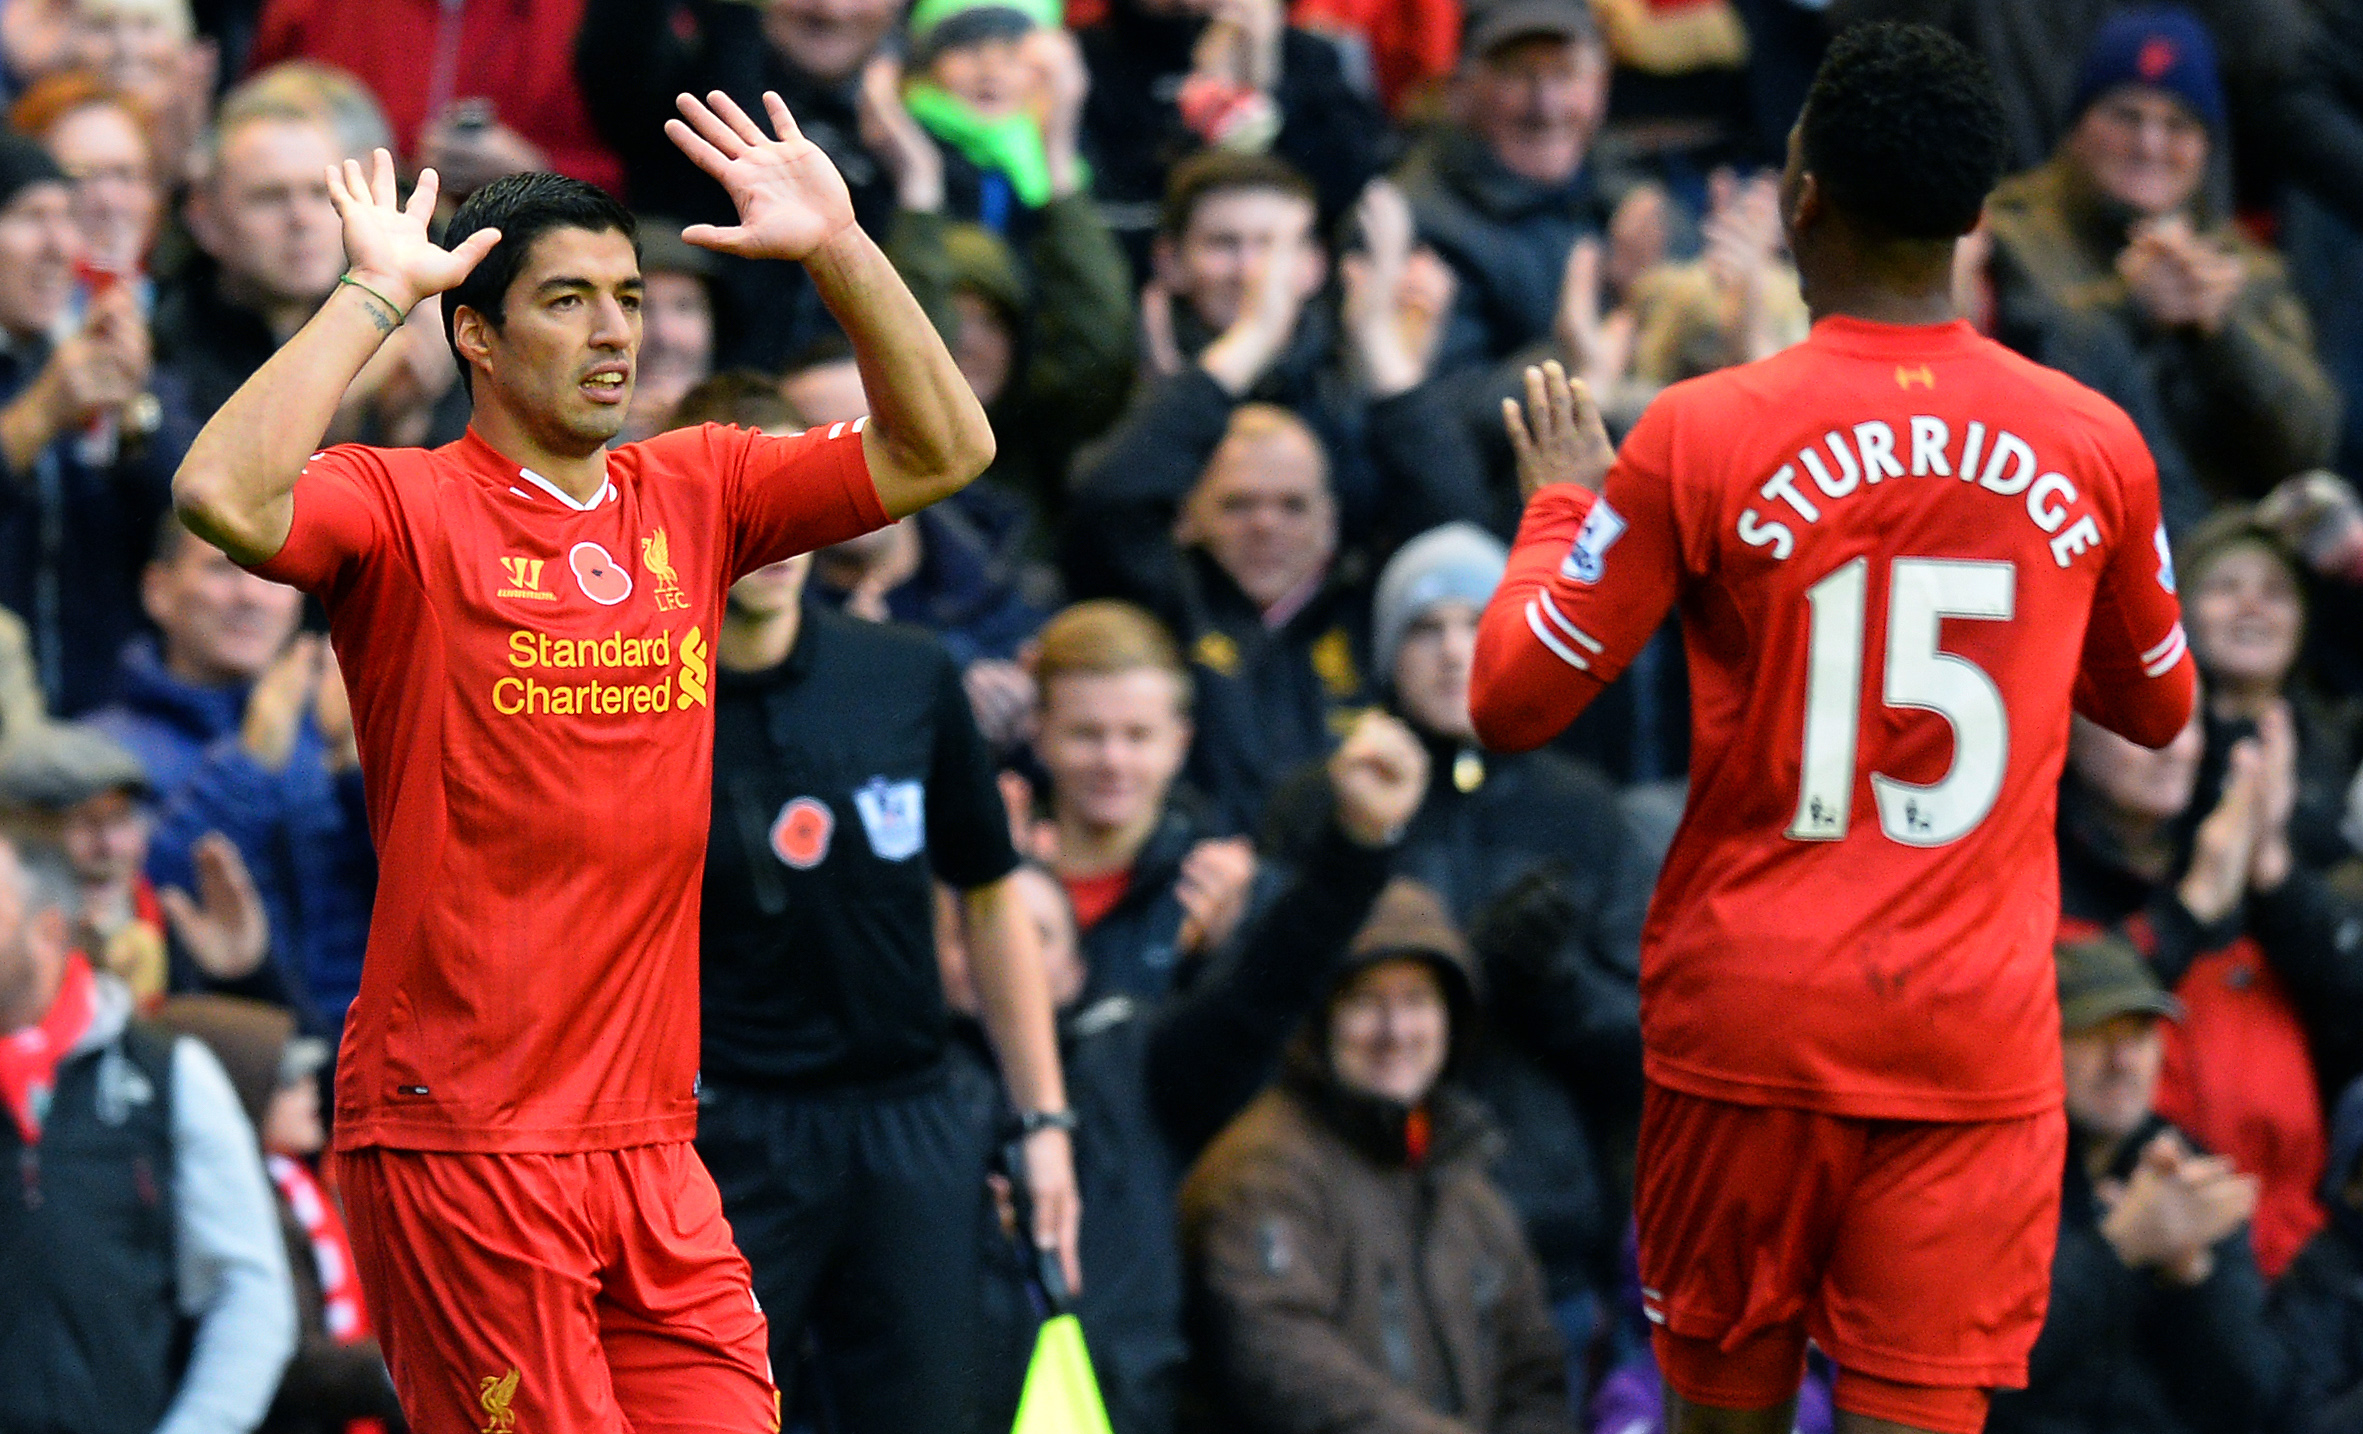 Liverpool strikers Luis Suarez and Daniel Sturridge